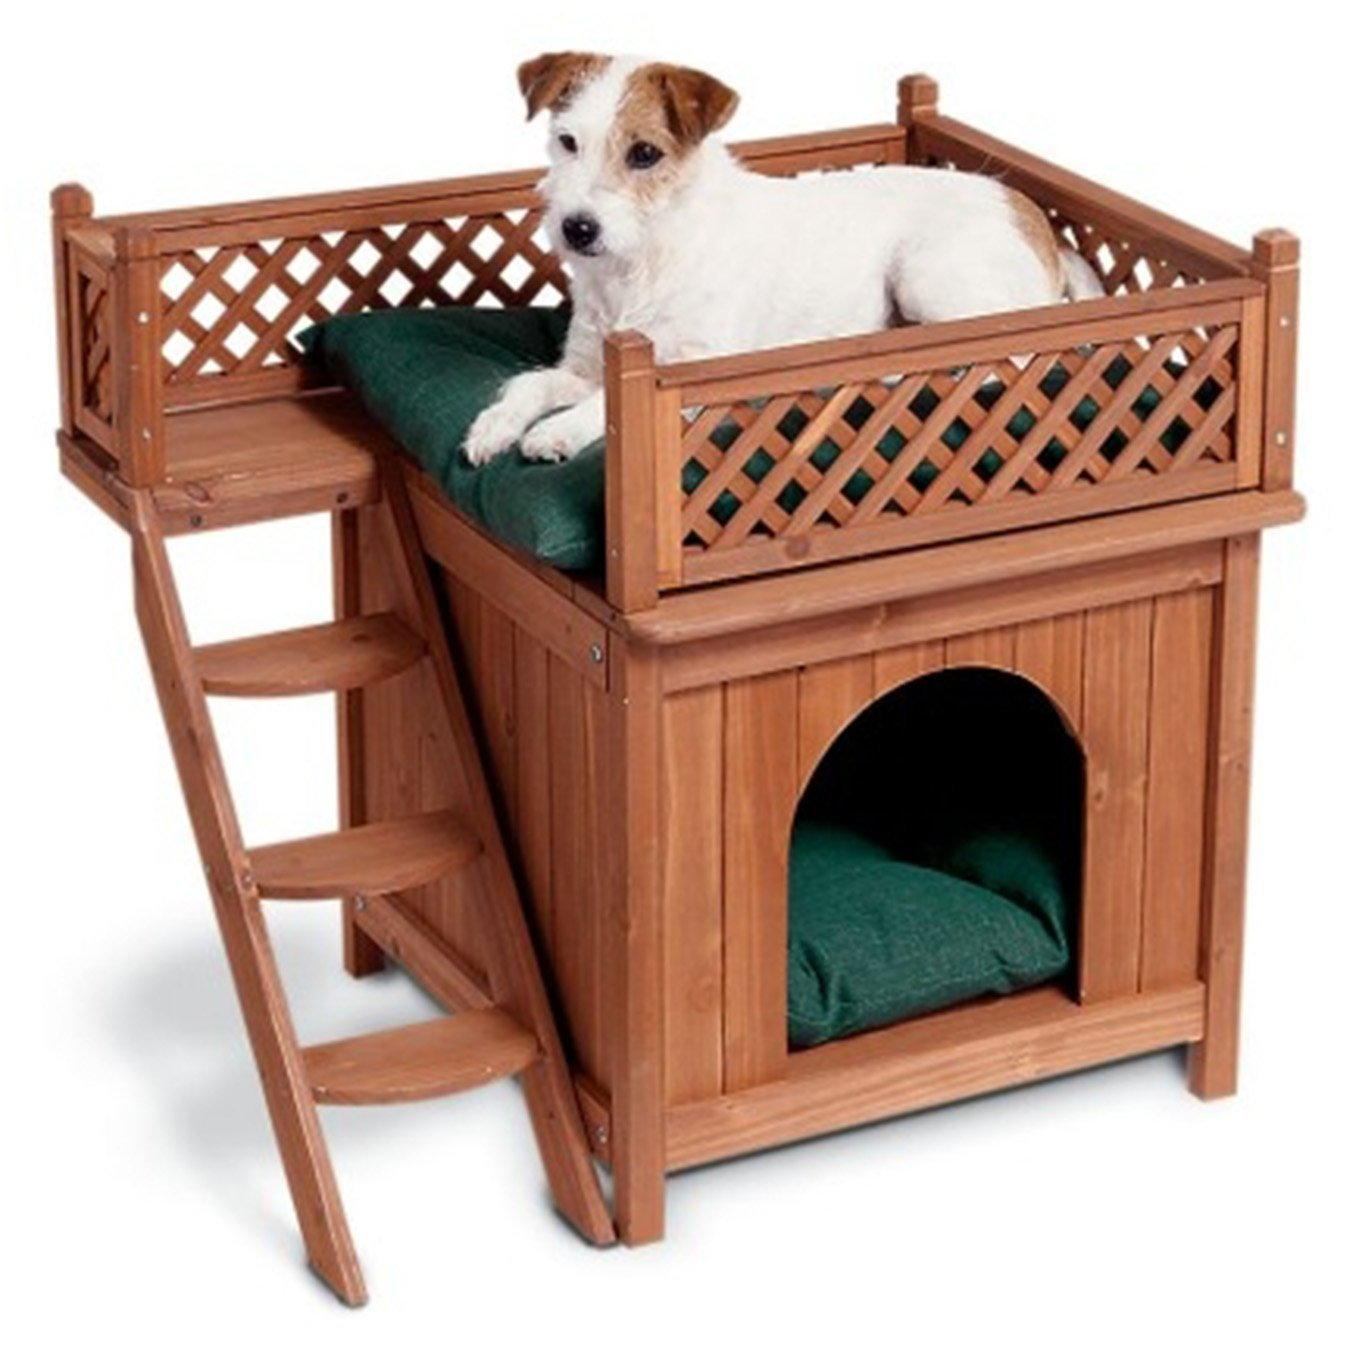 Double Dog Bed 11 Insane Dog Beds You Never Knew Existed The Dog People By